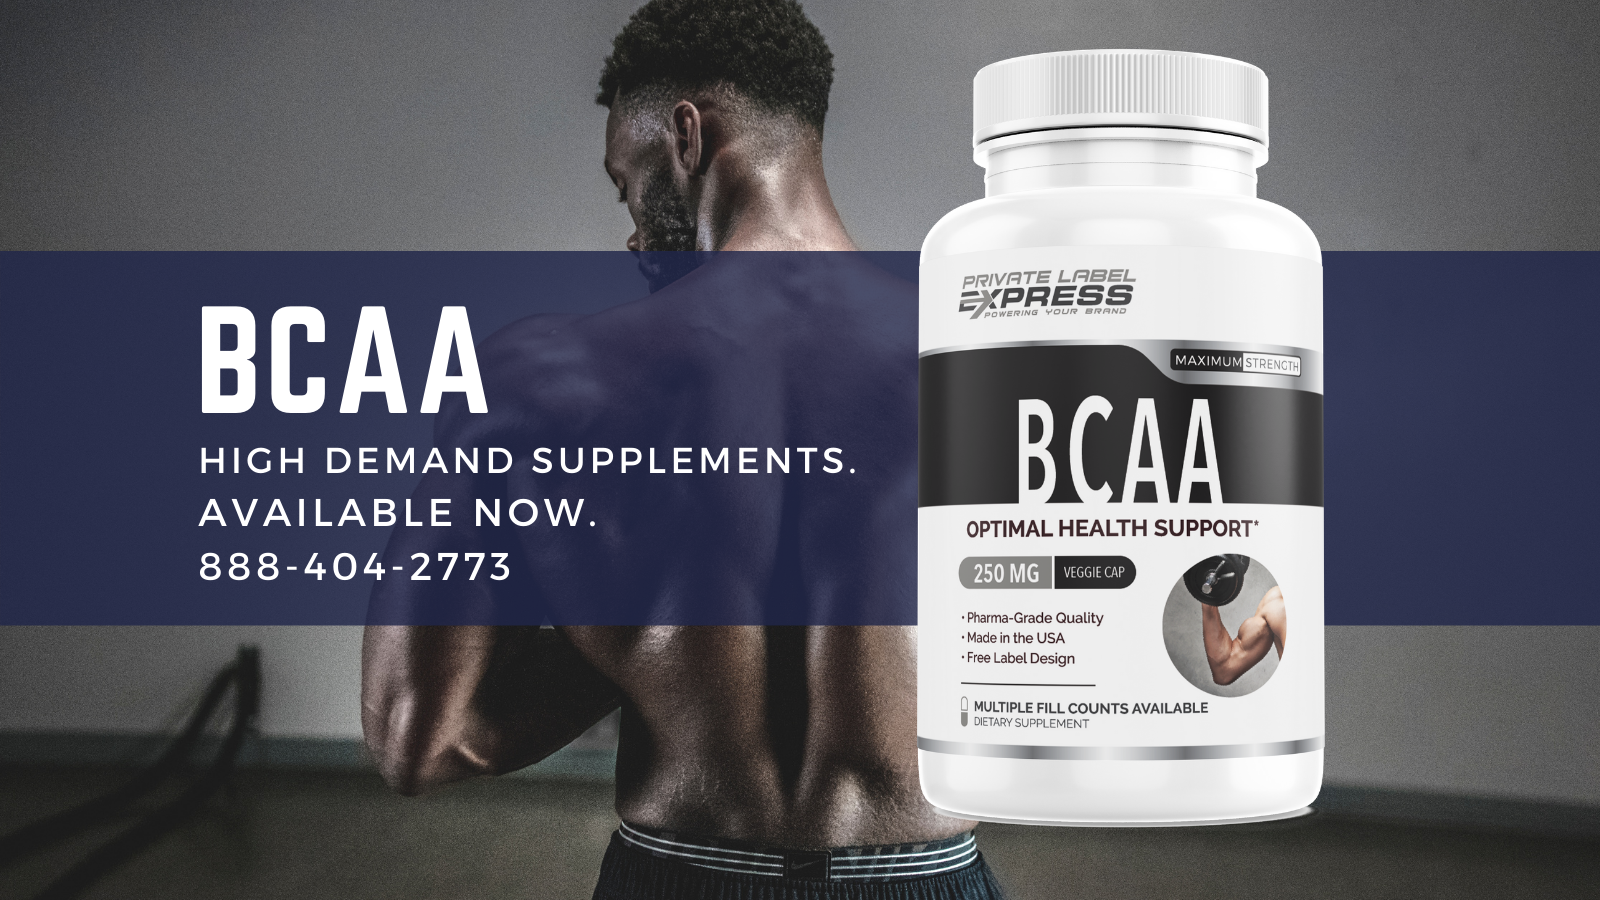 Private Label BCAA Supplements